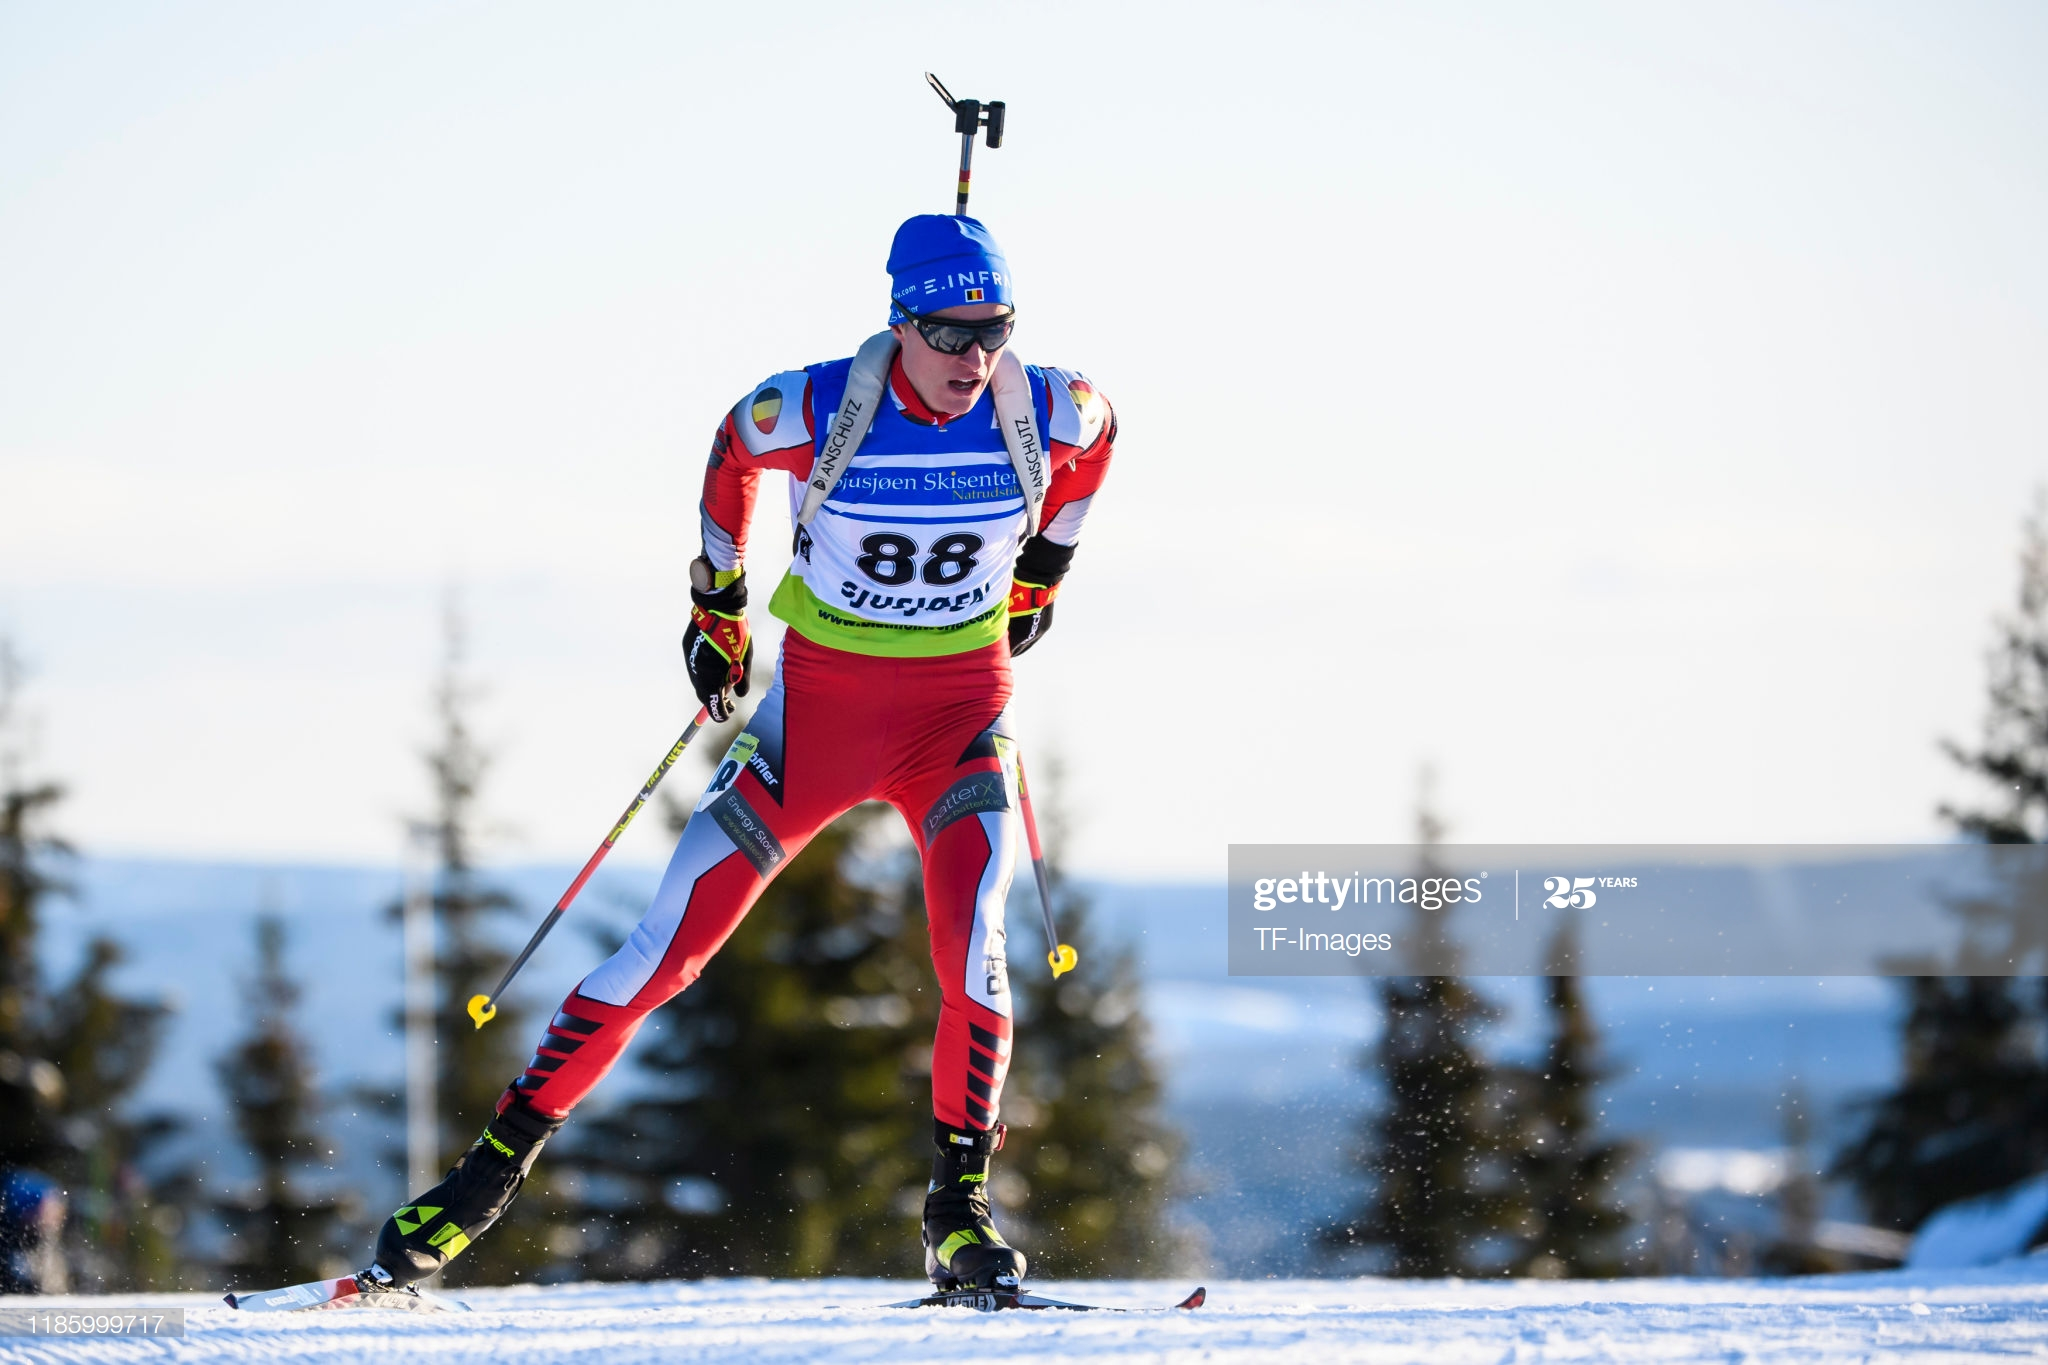 SJUSJOEN, NORWAY - NOVEMBER 30: Pjotr Karel A Dielen of Belgium in action competes during the Men 10 km Sprint Competition of the IBU Cup Biathlon Sjusjoen on November 30, 2019 in Sjusjoen, Norway. (Photo by TF-Images/Getty Images)